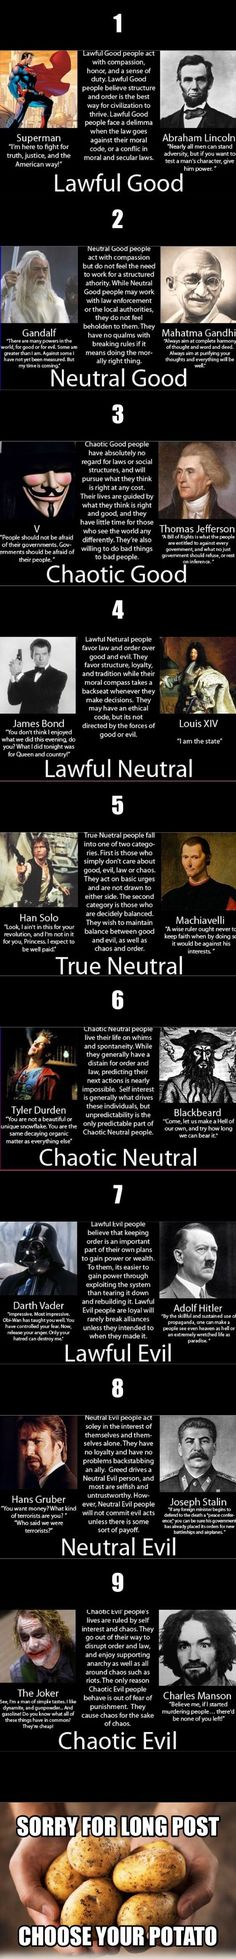 Good-Neutral-Evil, choose your side in the comments